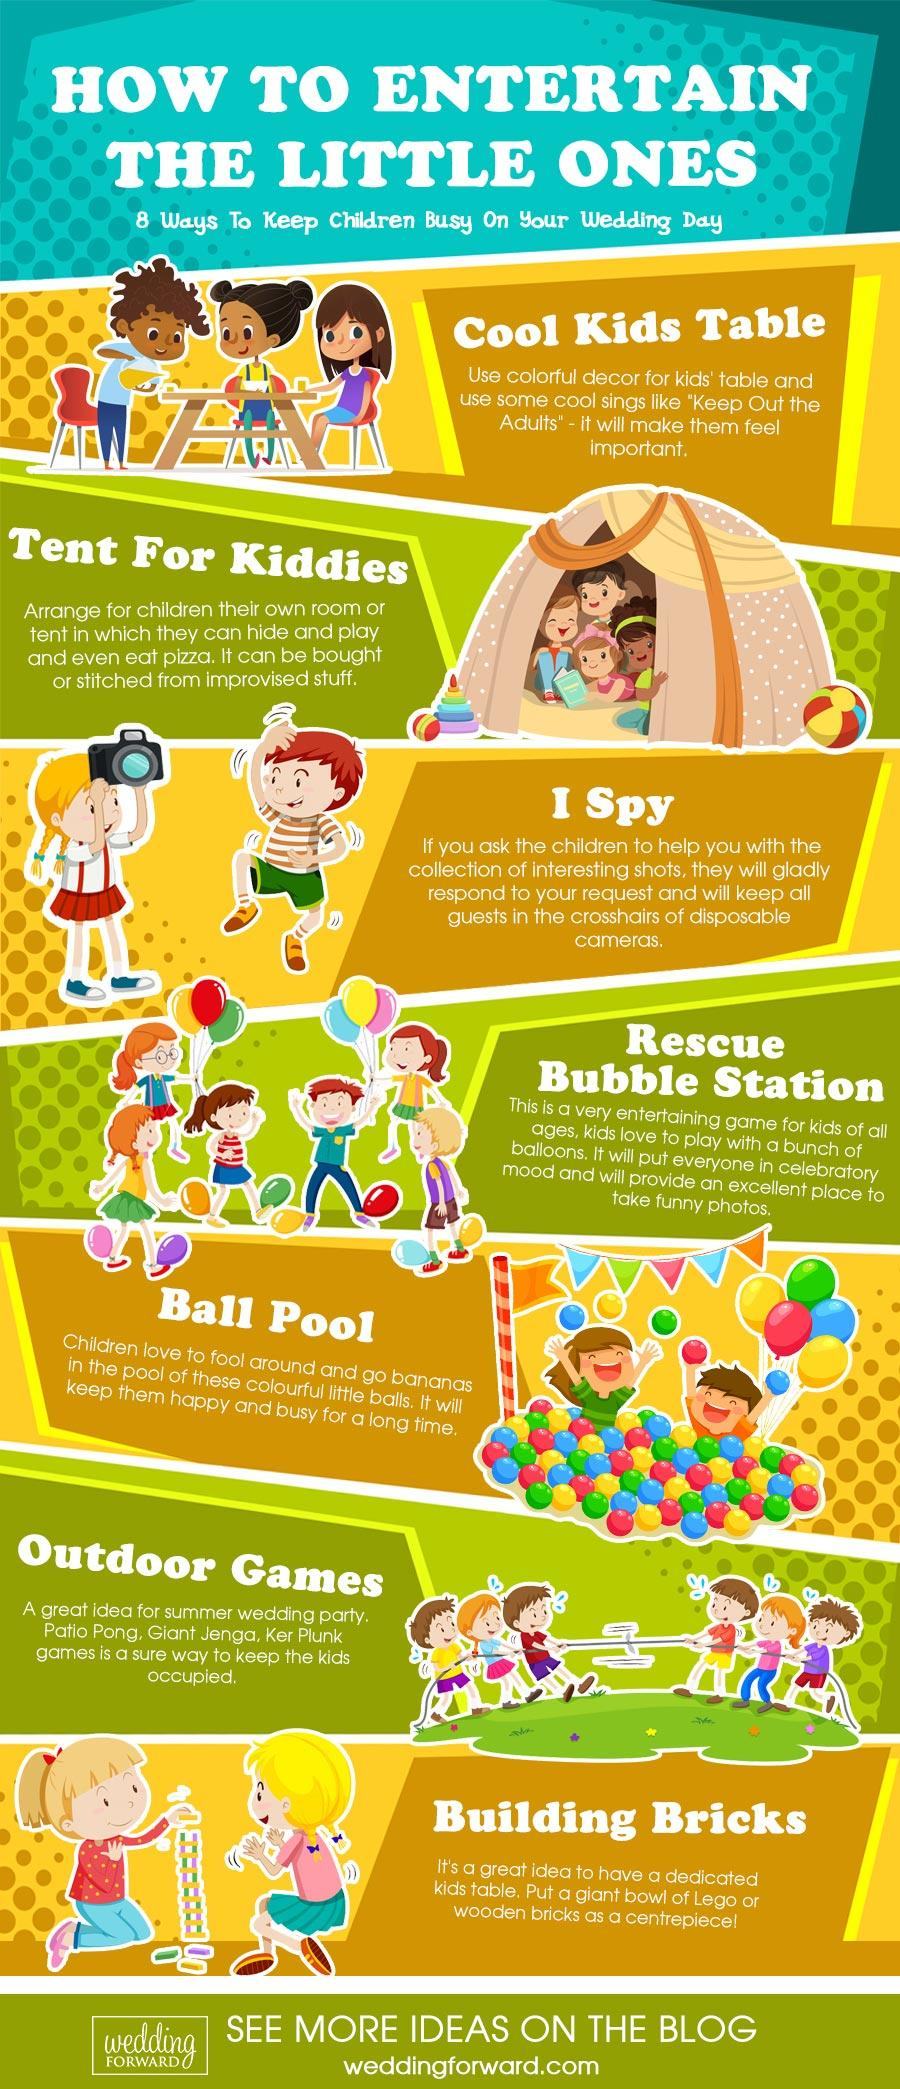 wedding entertainment infographics how to entertain kids ways to keep children busy